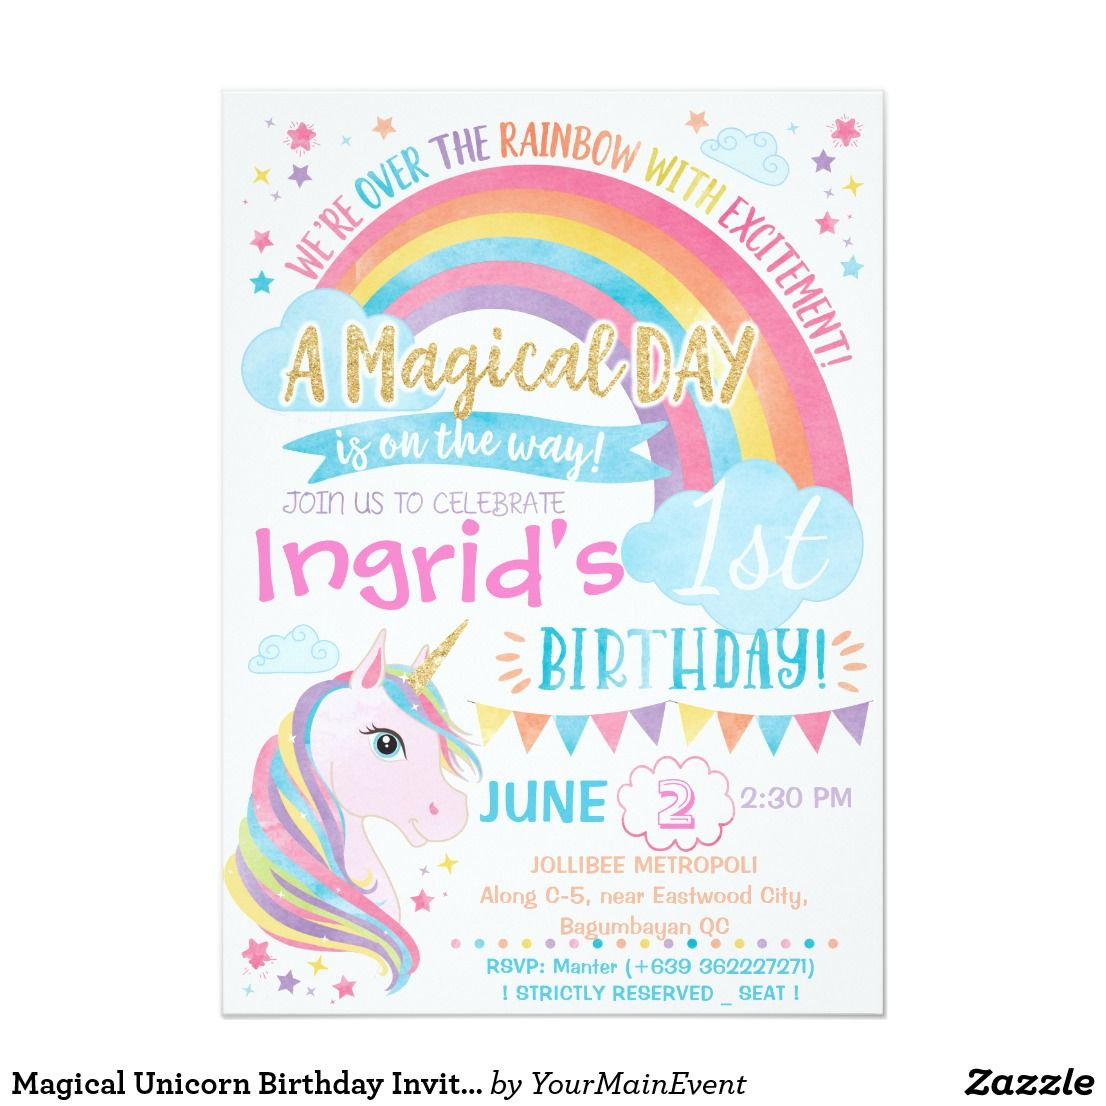 Invitation Magical Unicorn Rainbow Birthday